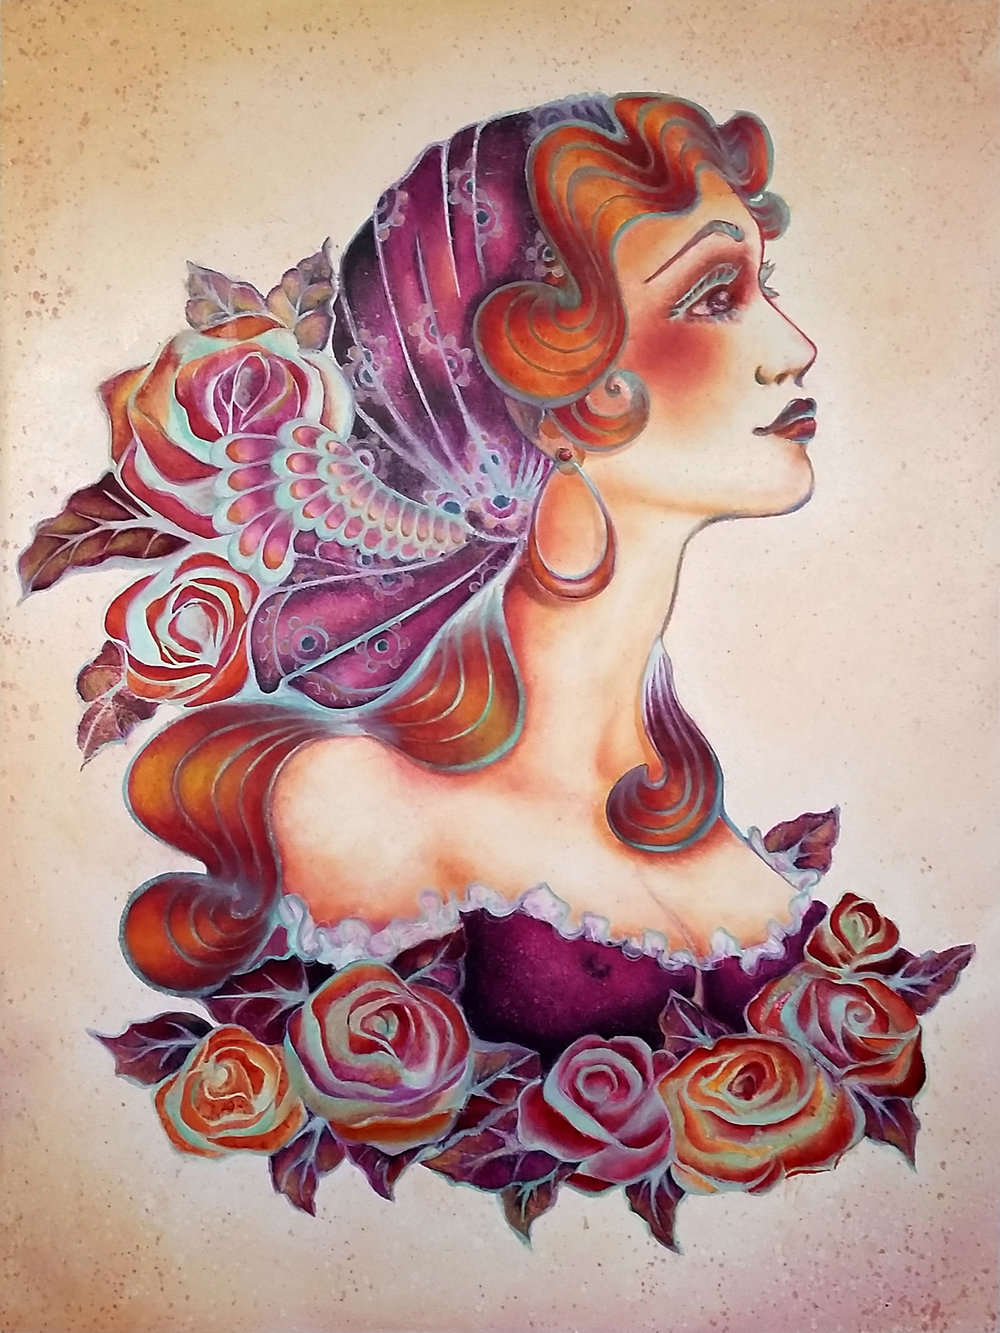 """Living Like a Gypsy"", 2014, Ginger Del Rey  oil on gesso board 24"" x 18"" x 1""  $1200  This painting is inspired by my love of classic, Sailor Jerry style tattoo imagery combined with the ornamentation of Alphonse Mucha, another artist I adore. Instead of the typical heavy black line work, I decided to reverse it by painting most of the lines in pale mint. I think it gives the piece a lush feminine quality."